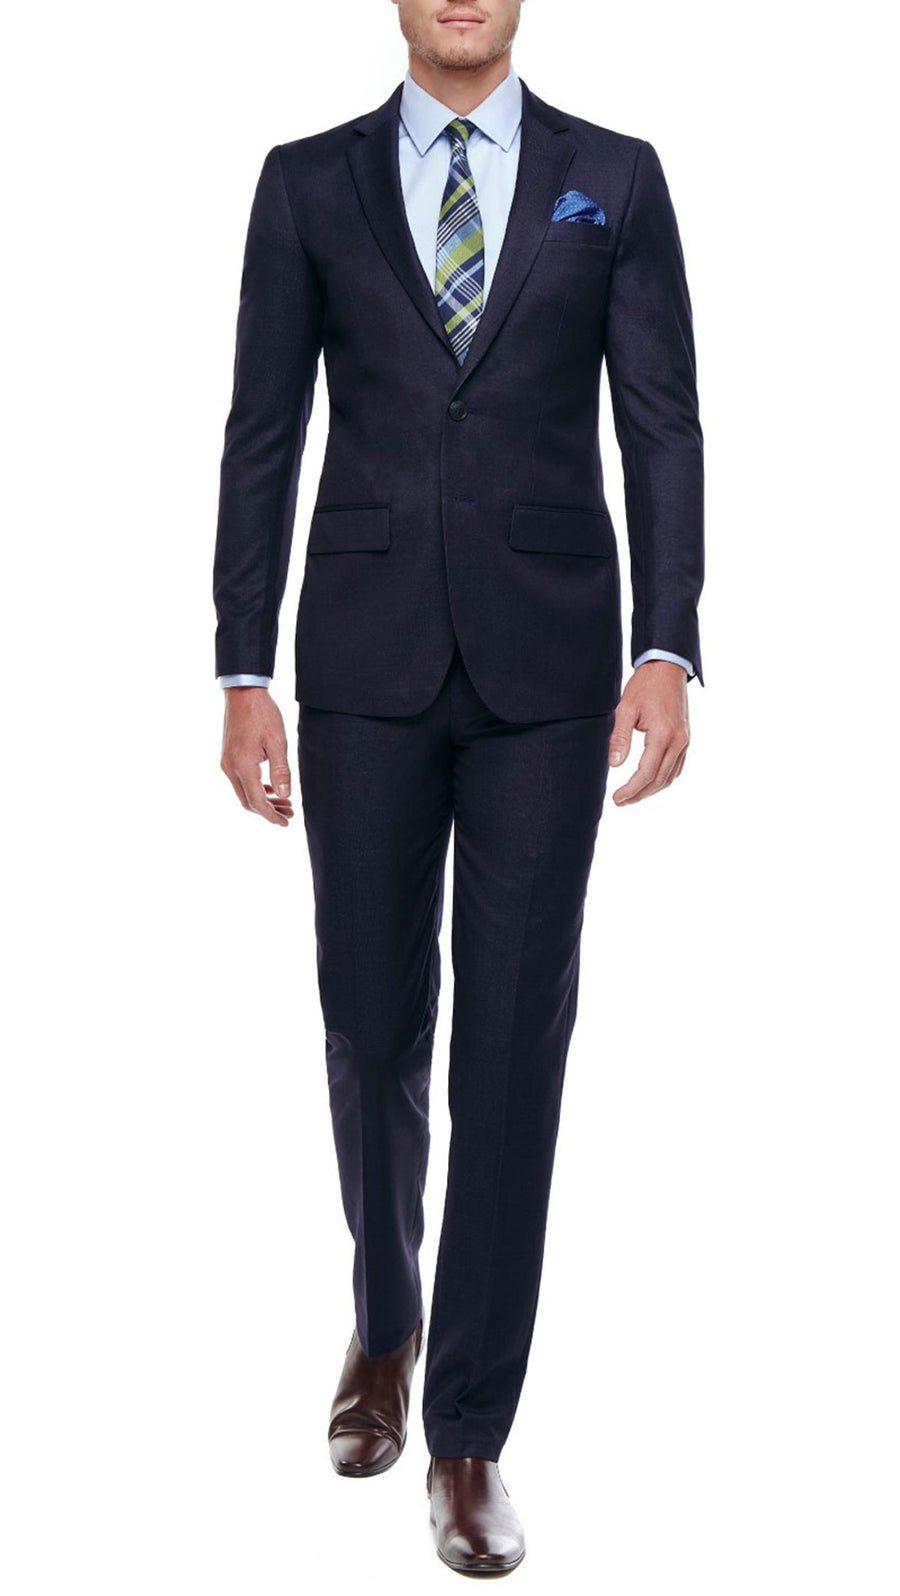 Bell & Barnett Slim Fit Wool Suit in Navy